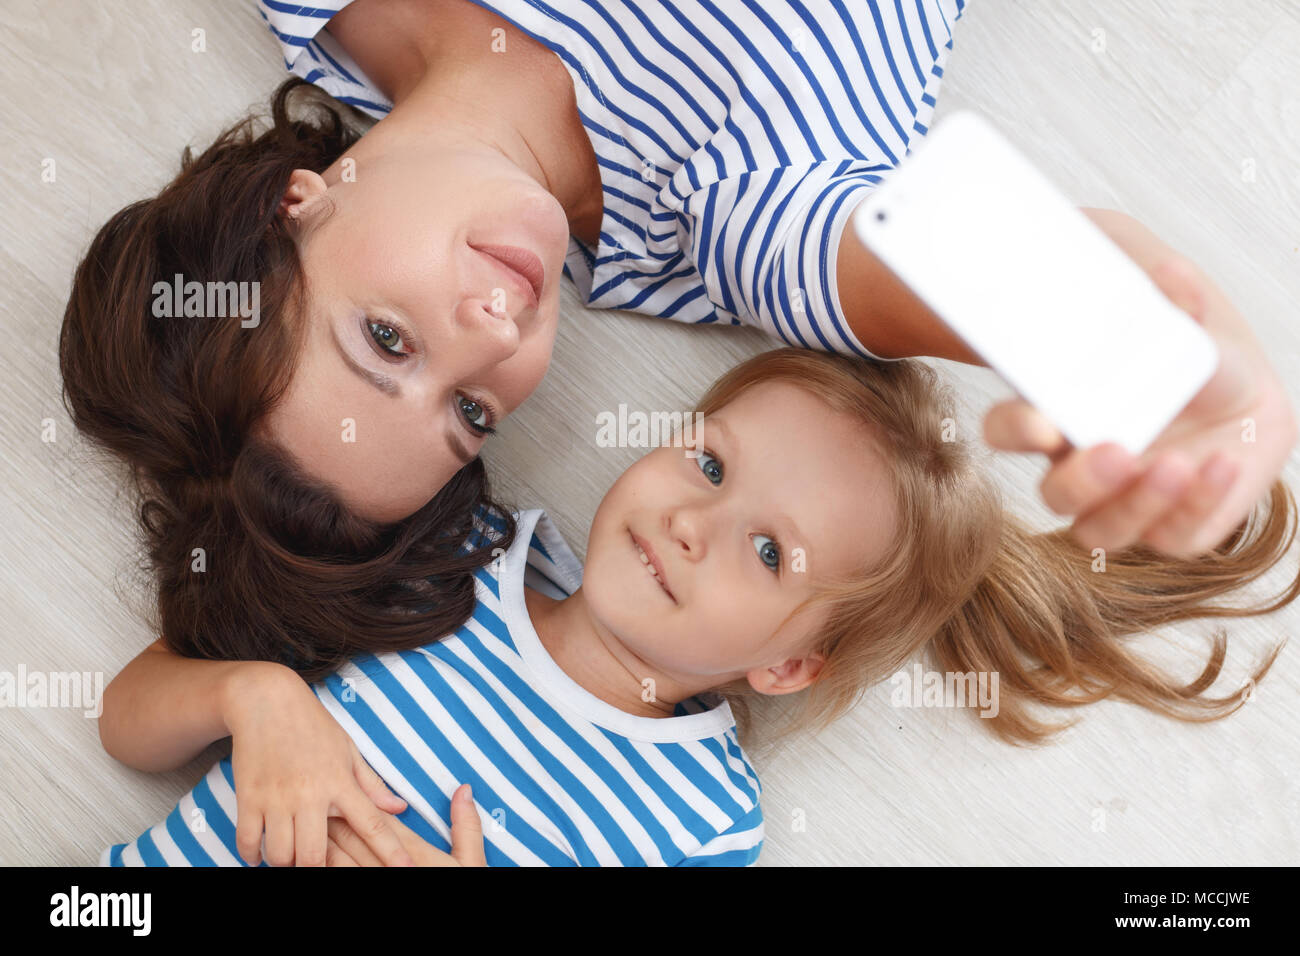 Mother and daughter making a selfie. Family holiday and togetherness, smiling and hugging, having fun. - Stock Image